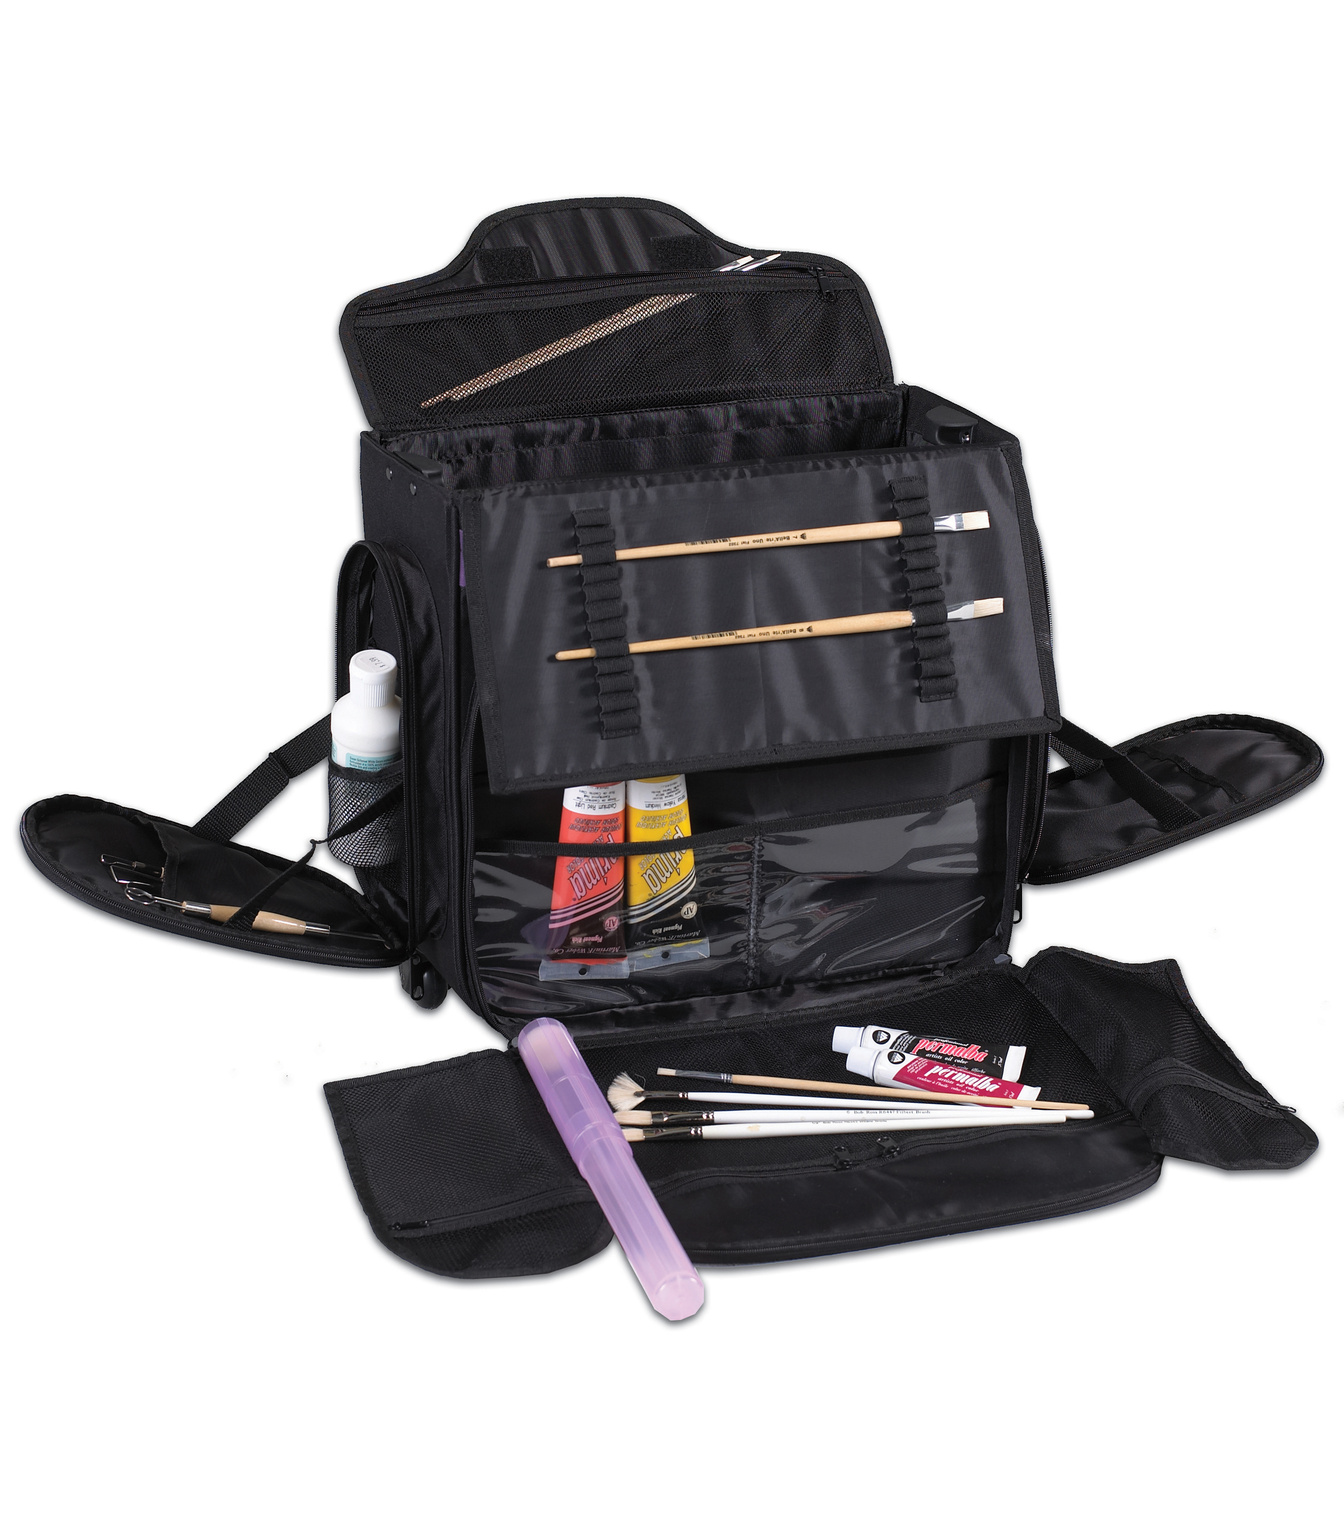 Martin Universal-Just Stow It Roller Board Art Tote-Black